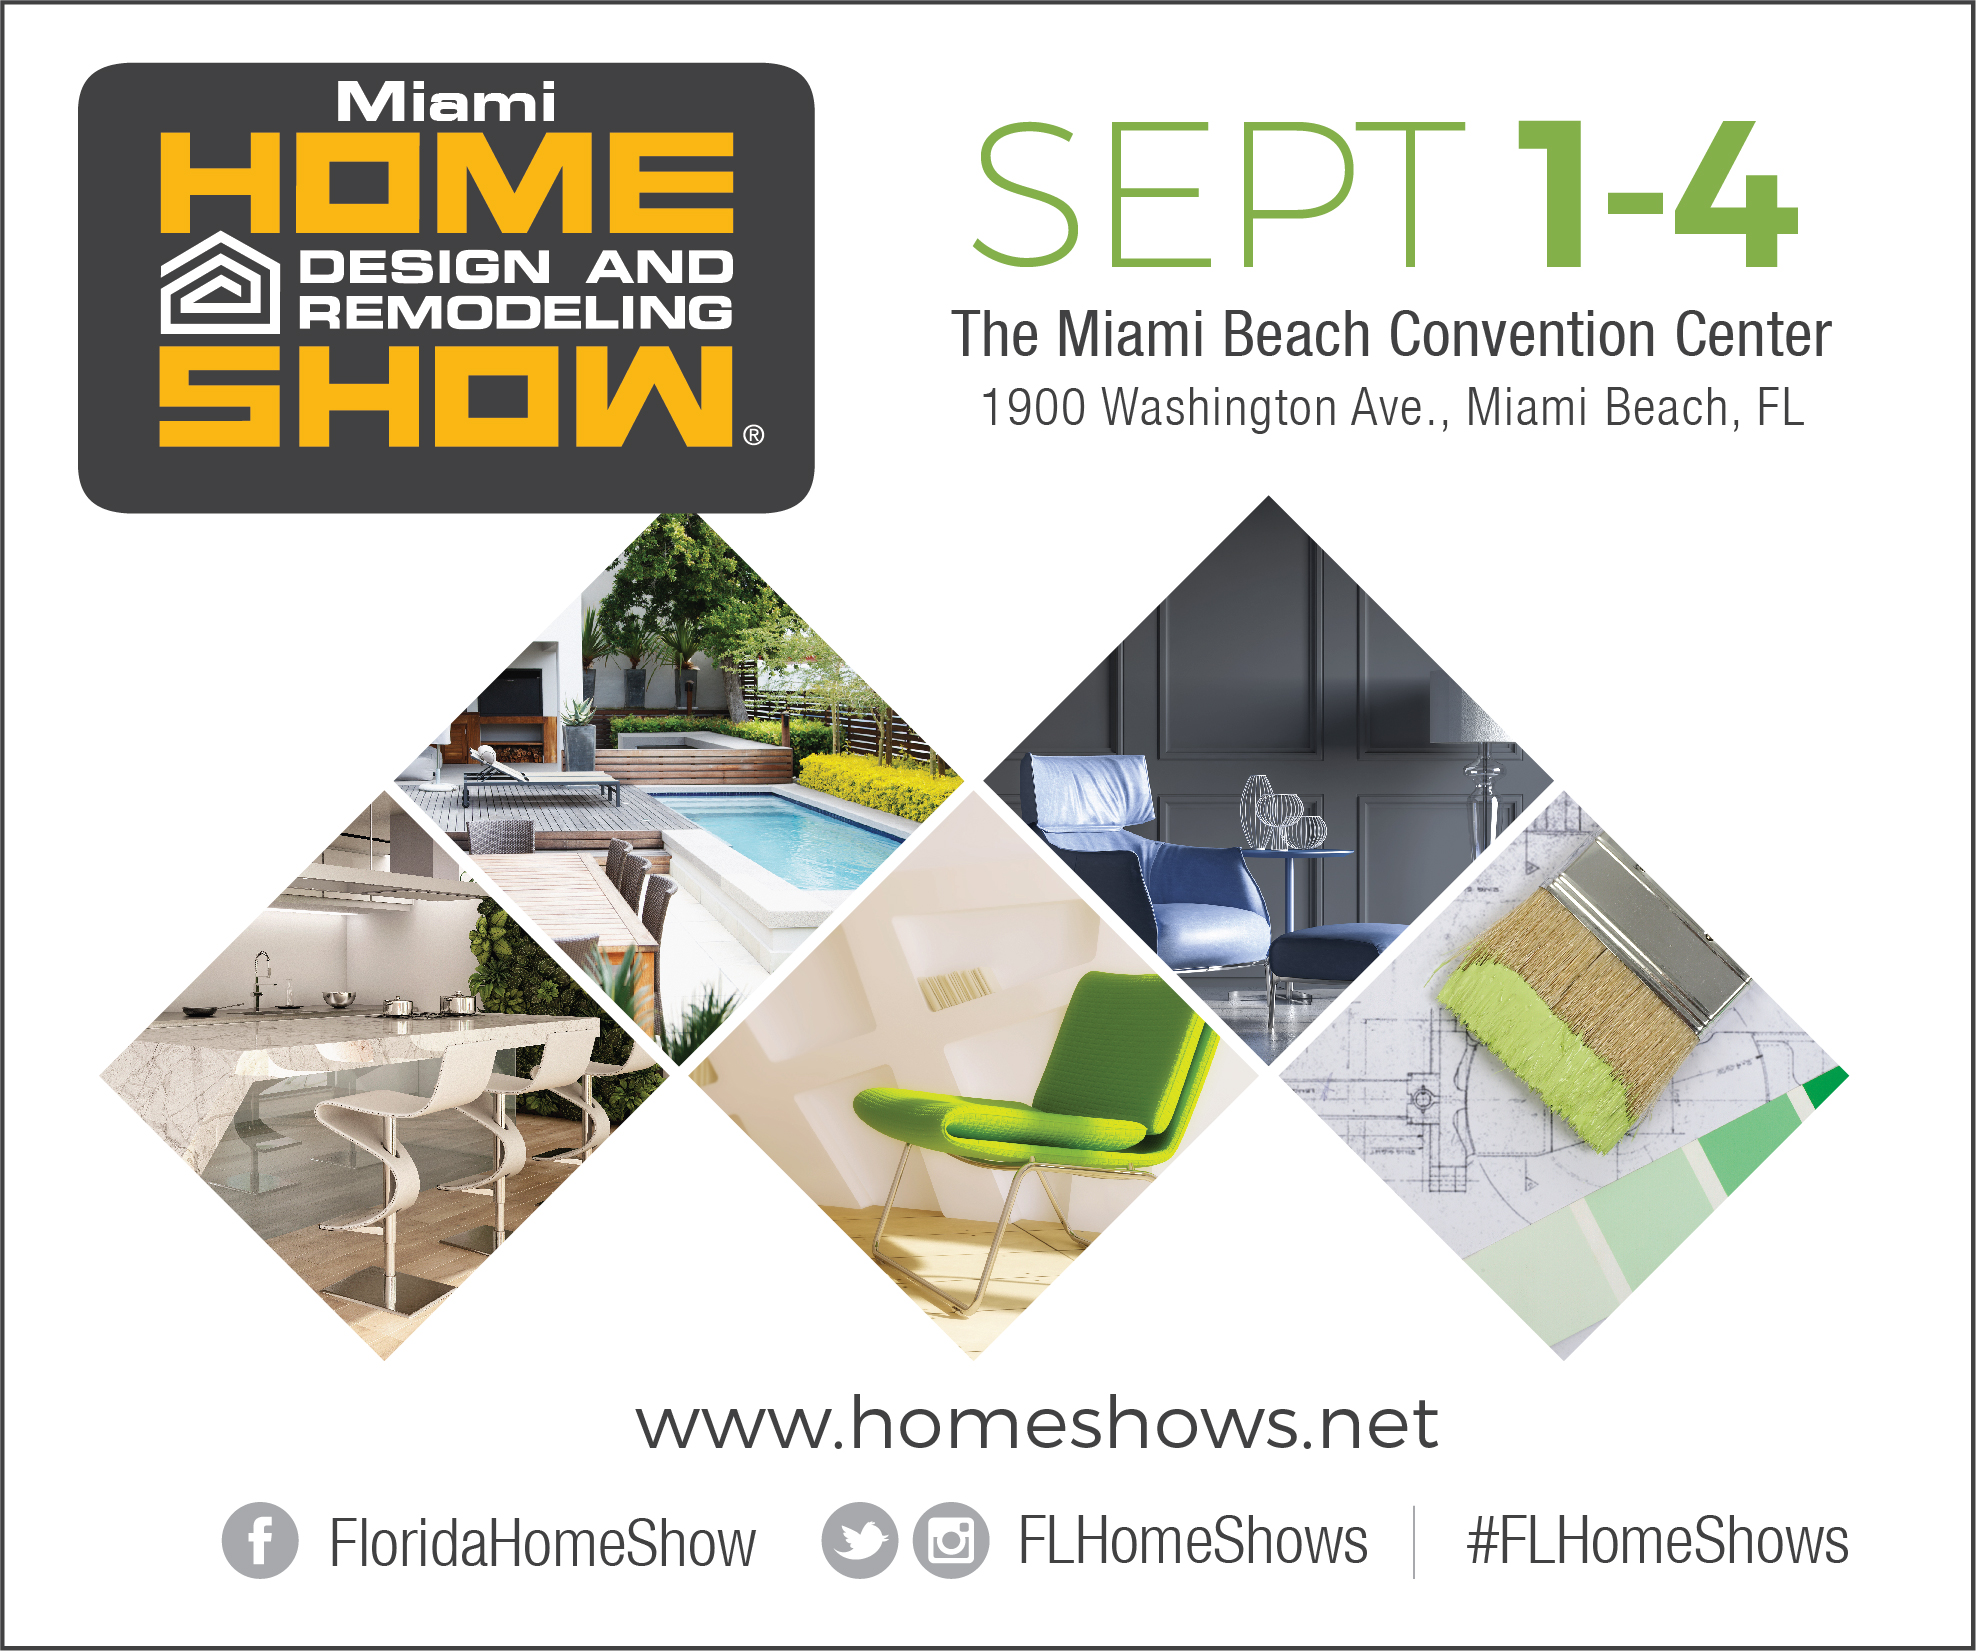 Miami Home Design And Remodeling Show 9/1/17, 9/2/17, 9/3